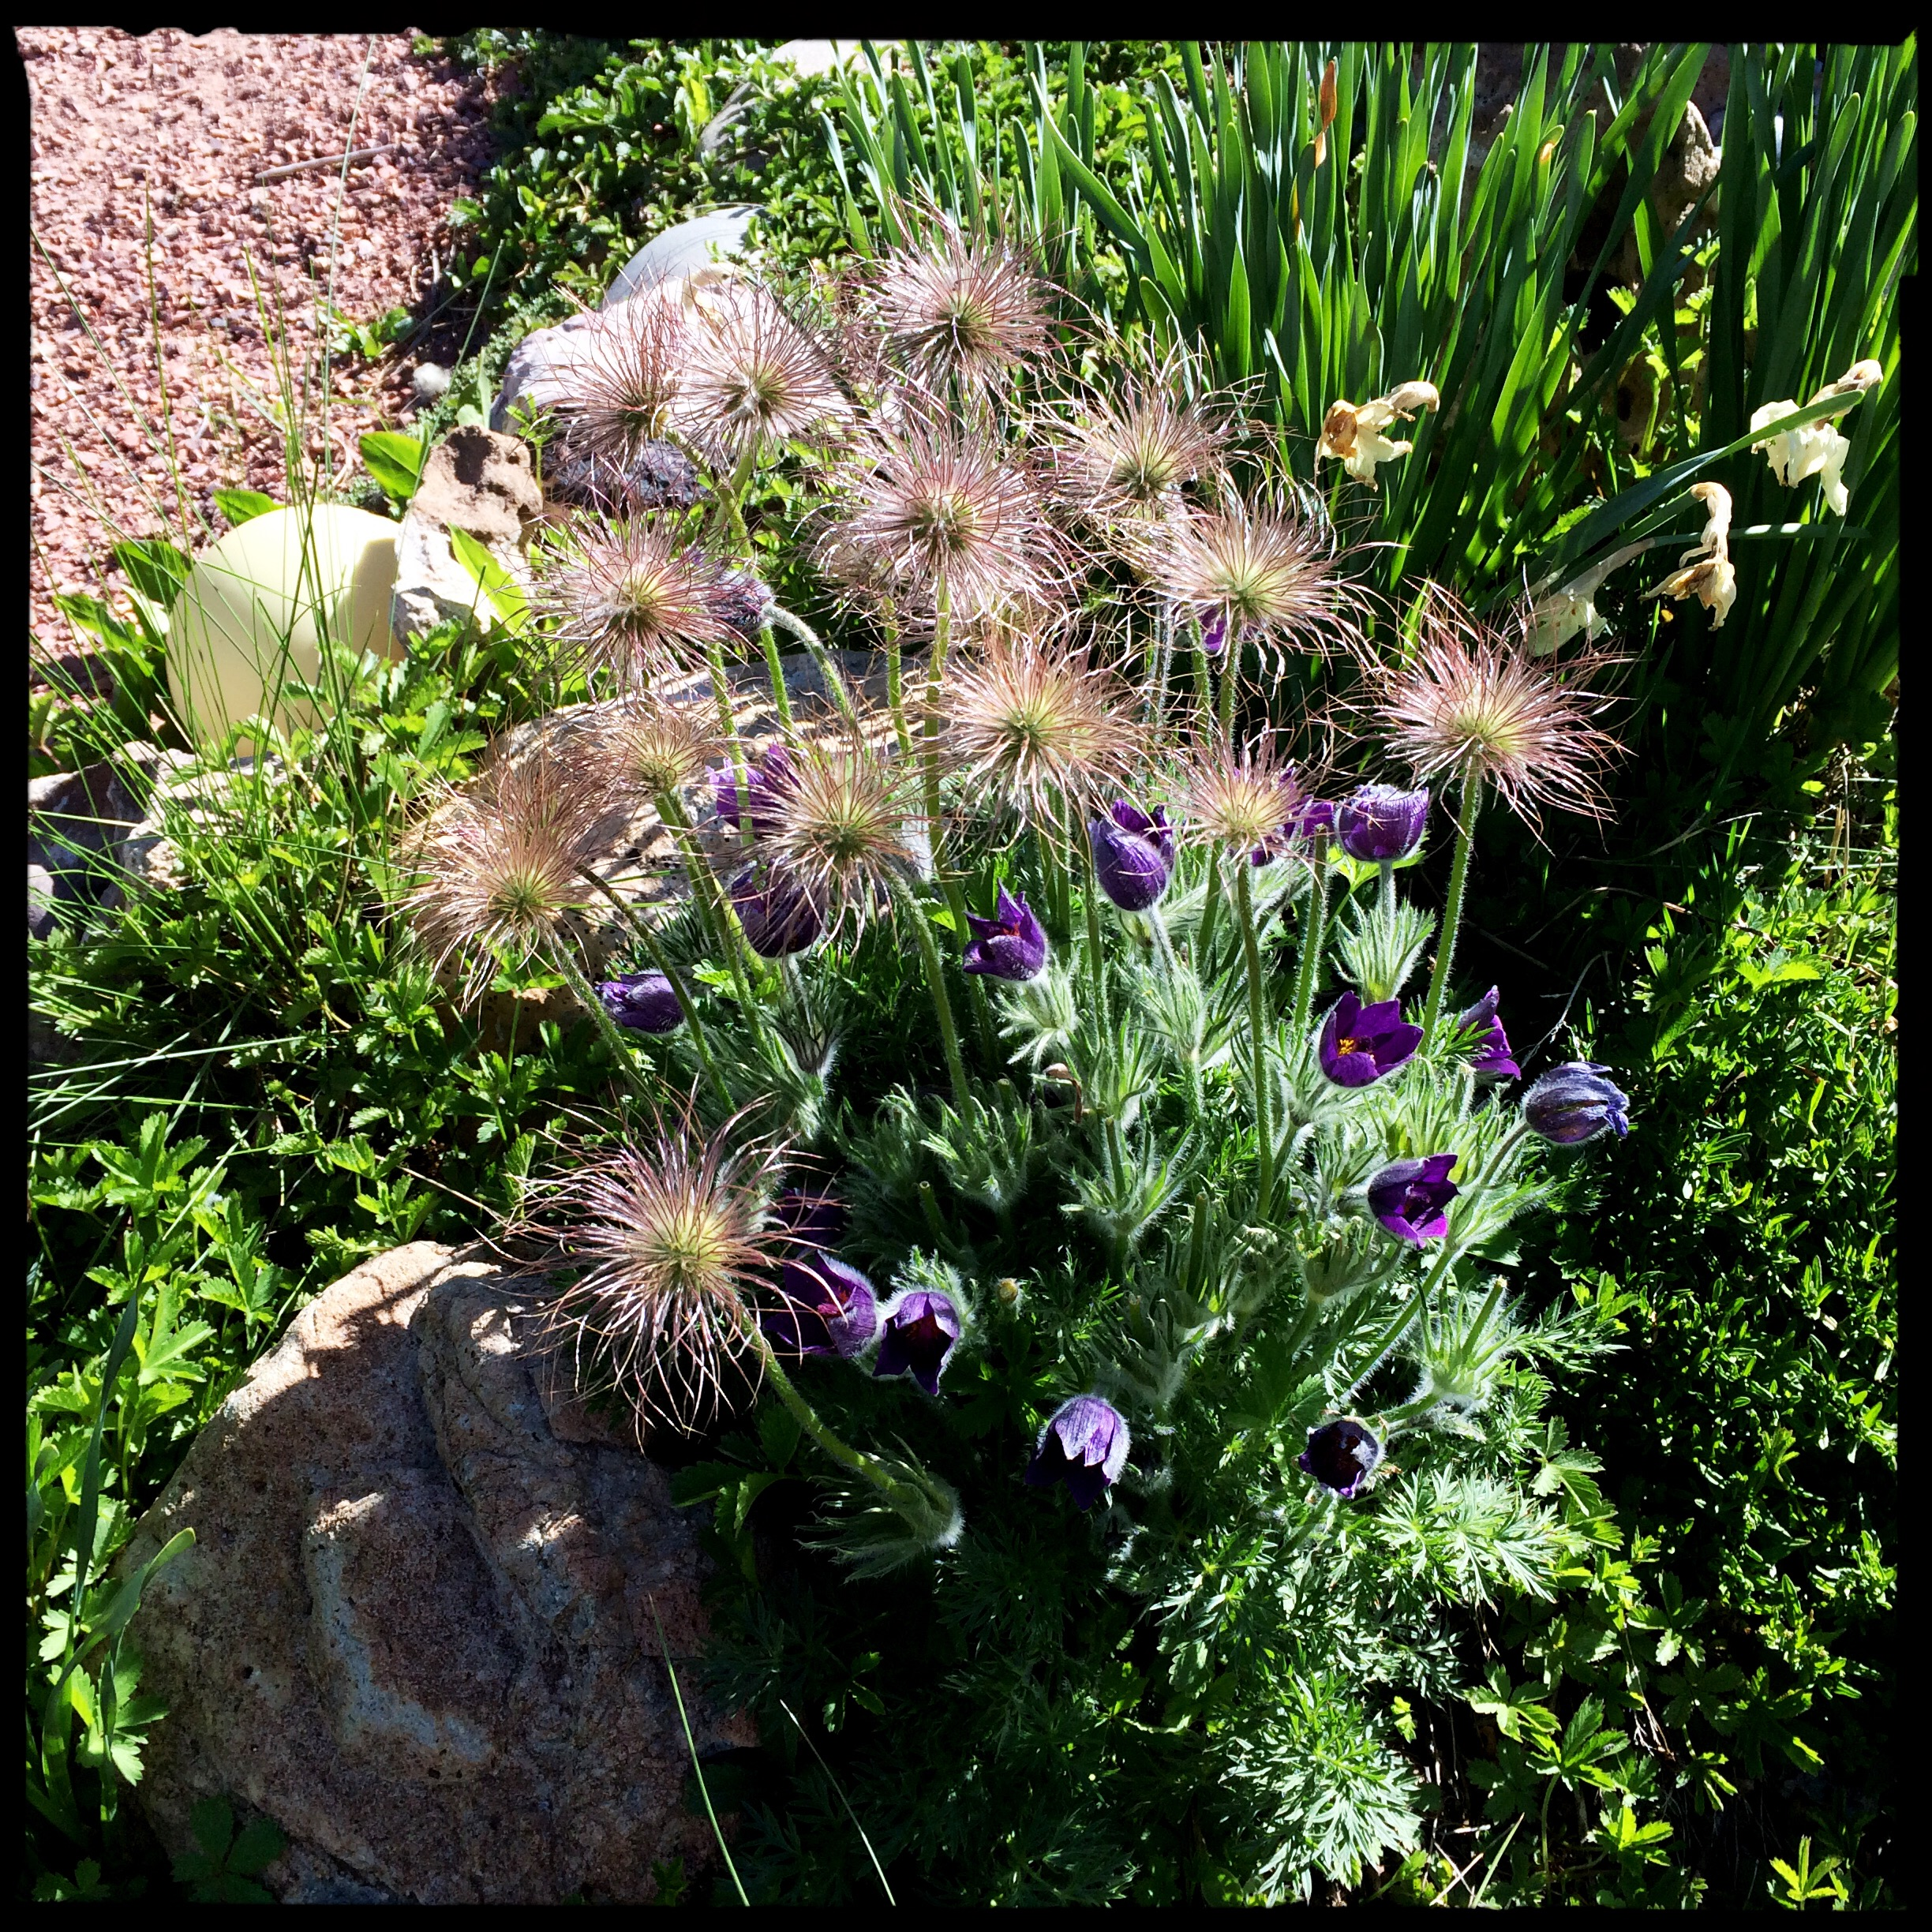 European pasqueflowers continue to delight myself and visitors with their lush purple blossoms and airy seedheads. I observed in another bed that the seedheads fall outward after they grow so tall, and thereby make a ring of babies around the mother plant.